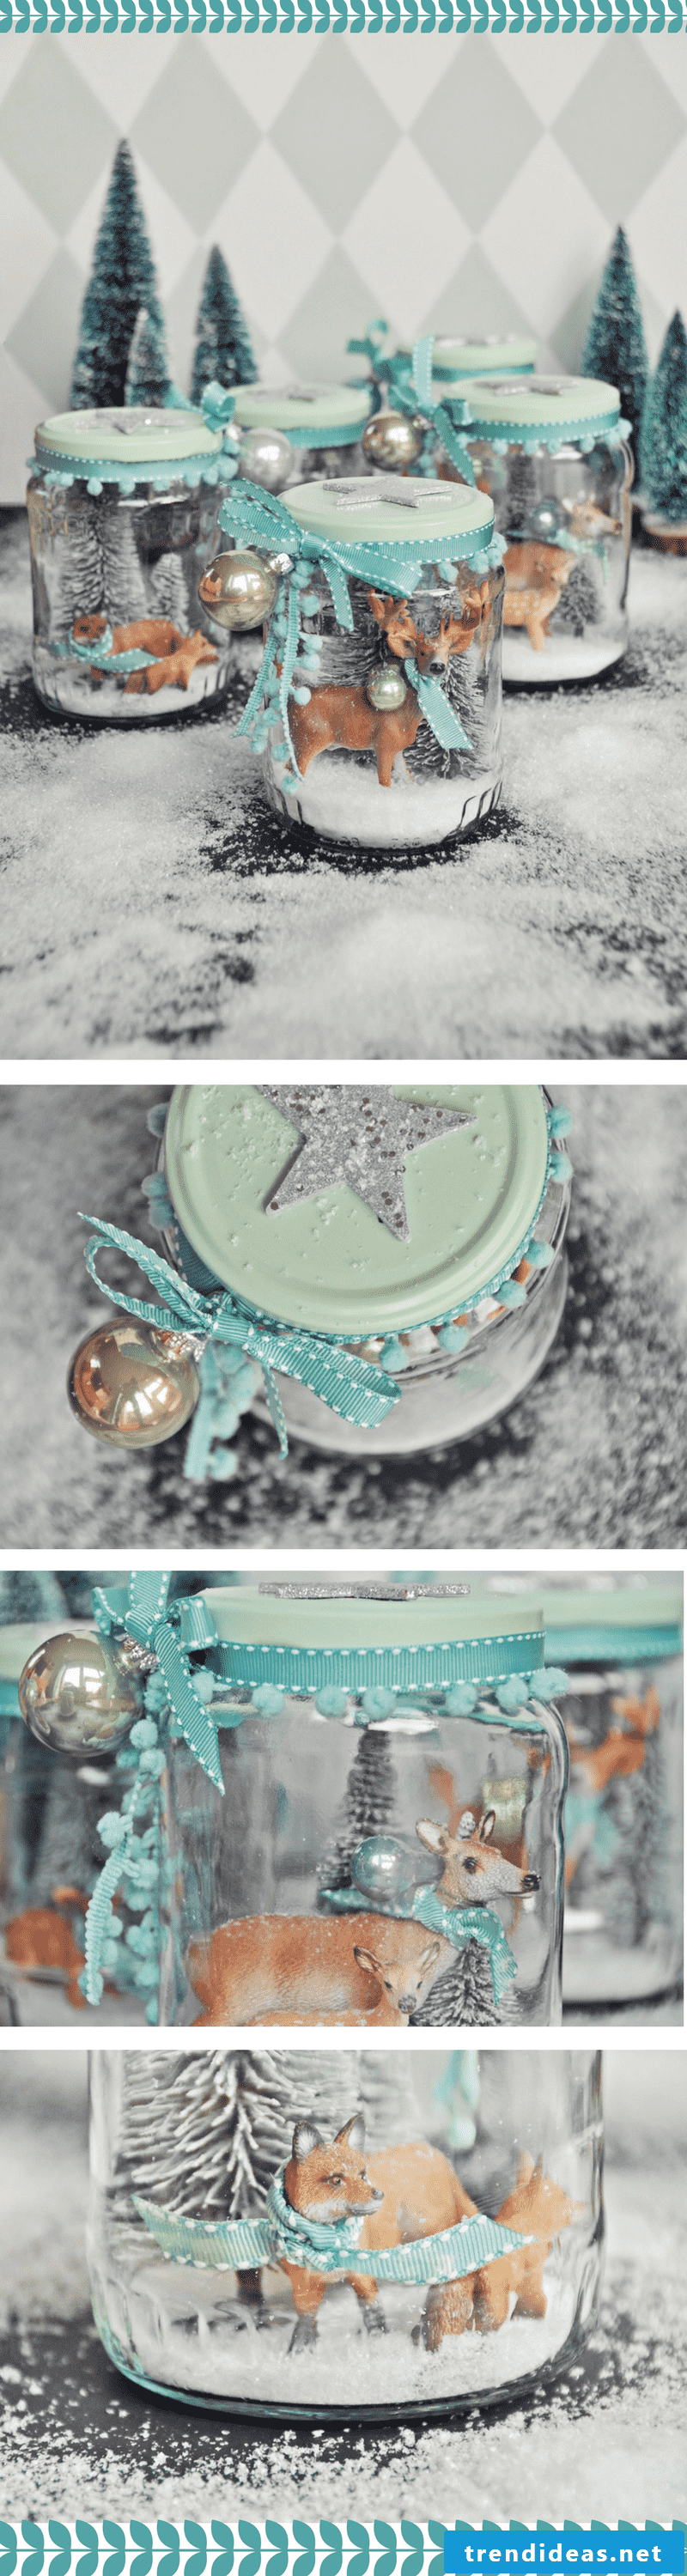 Craft ideas for all ages: conjure up a beautiful Christmas!